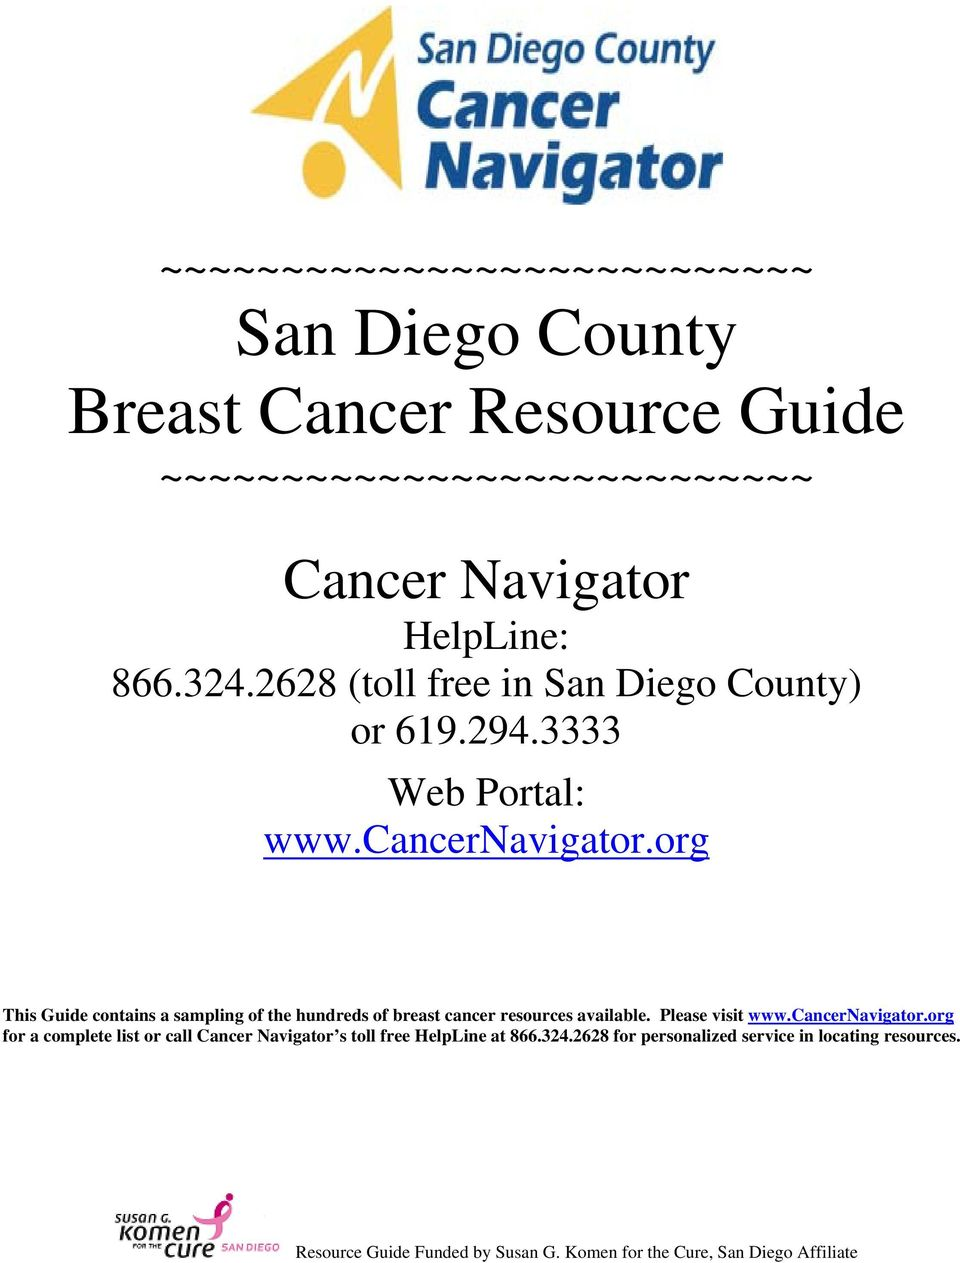 org This Guide contains a sampling of the hundreds of breast cancer resources available. Please visit www.cancernavigator.